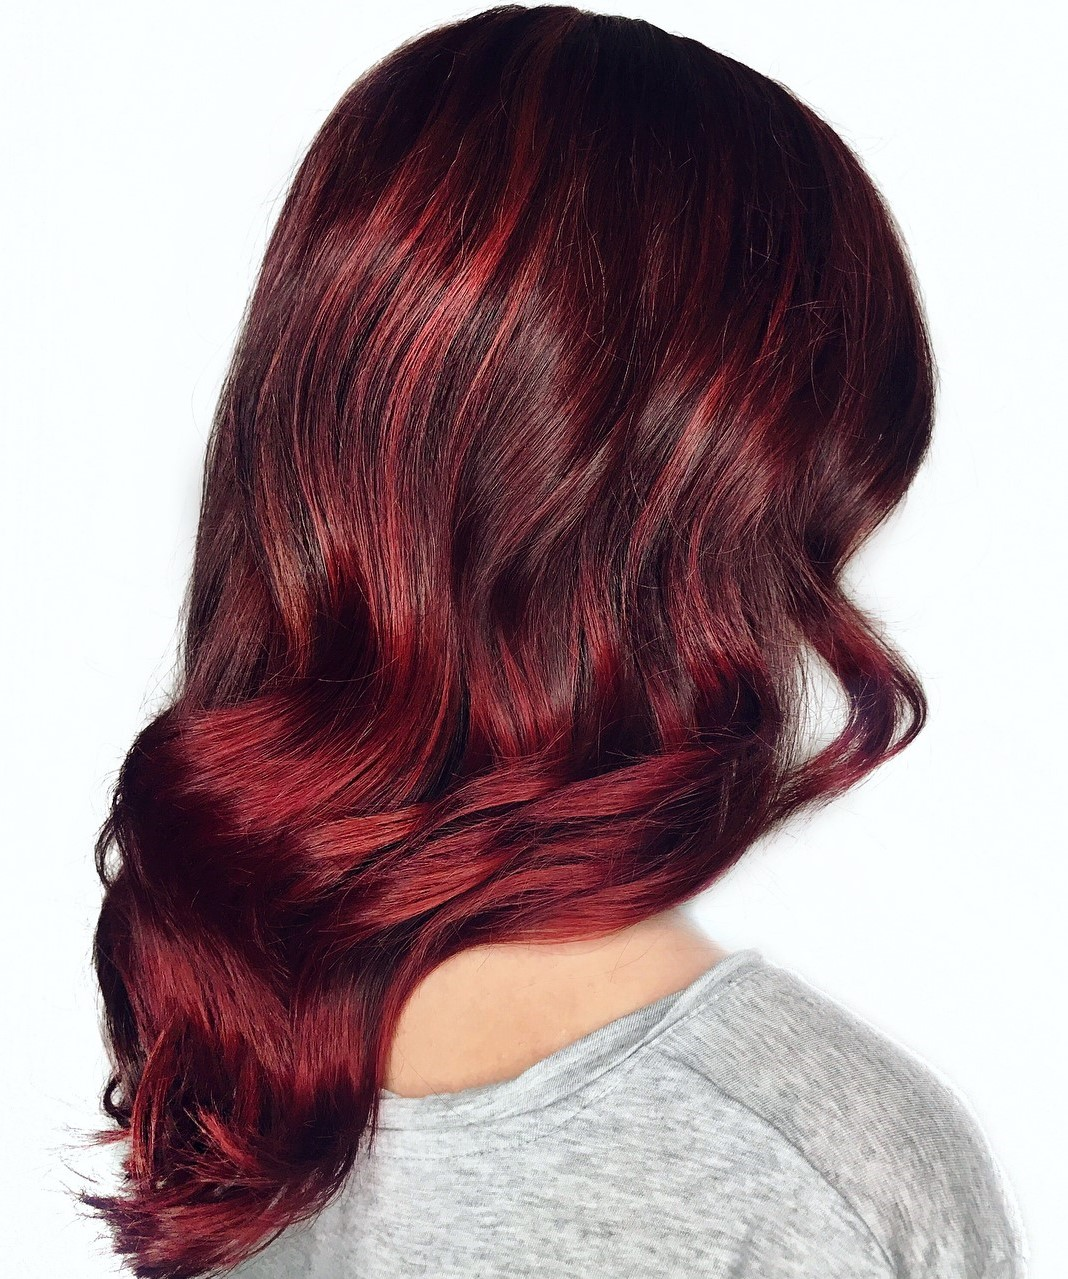 Maroon Burgundy Hair with a Light Wave